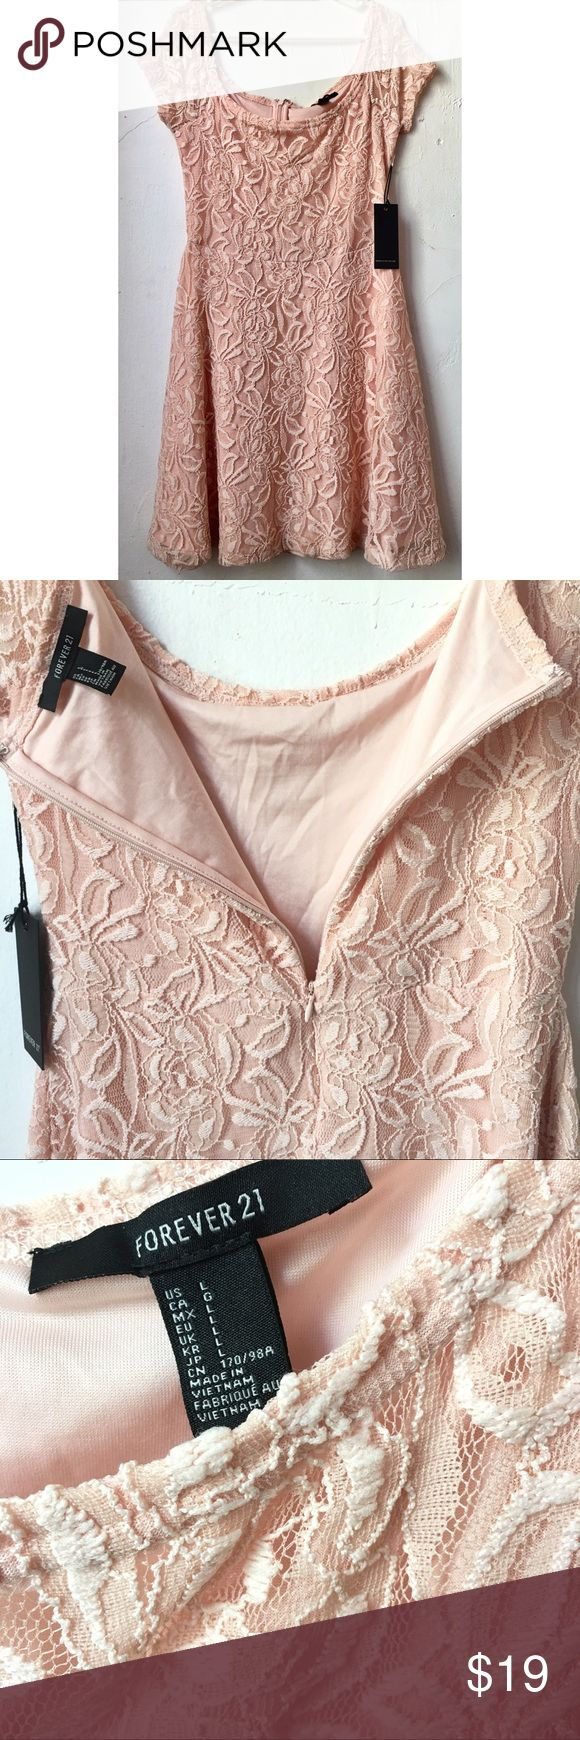 Forever 21 dress. Forever 21 light pink dress in size Large but fits medium too. Never worn with tag. Purchased years ago at the soho store location. Fabric is super stretchy!  Price firm! Forever 21 Dresses